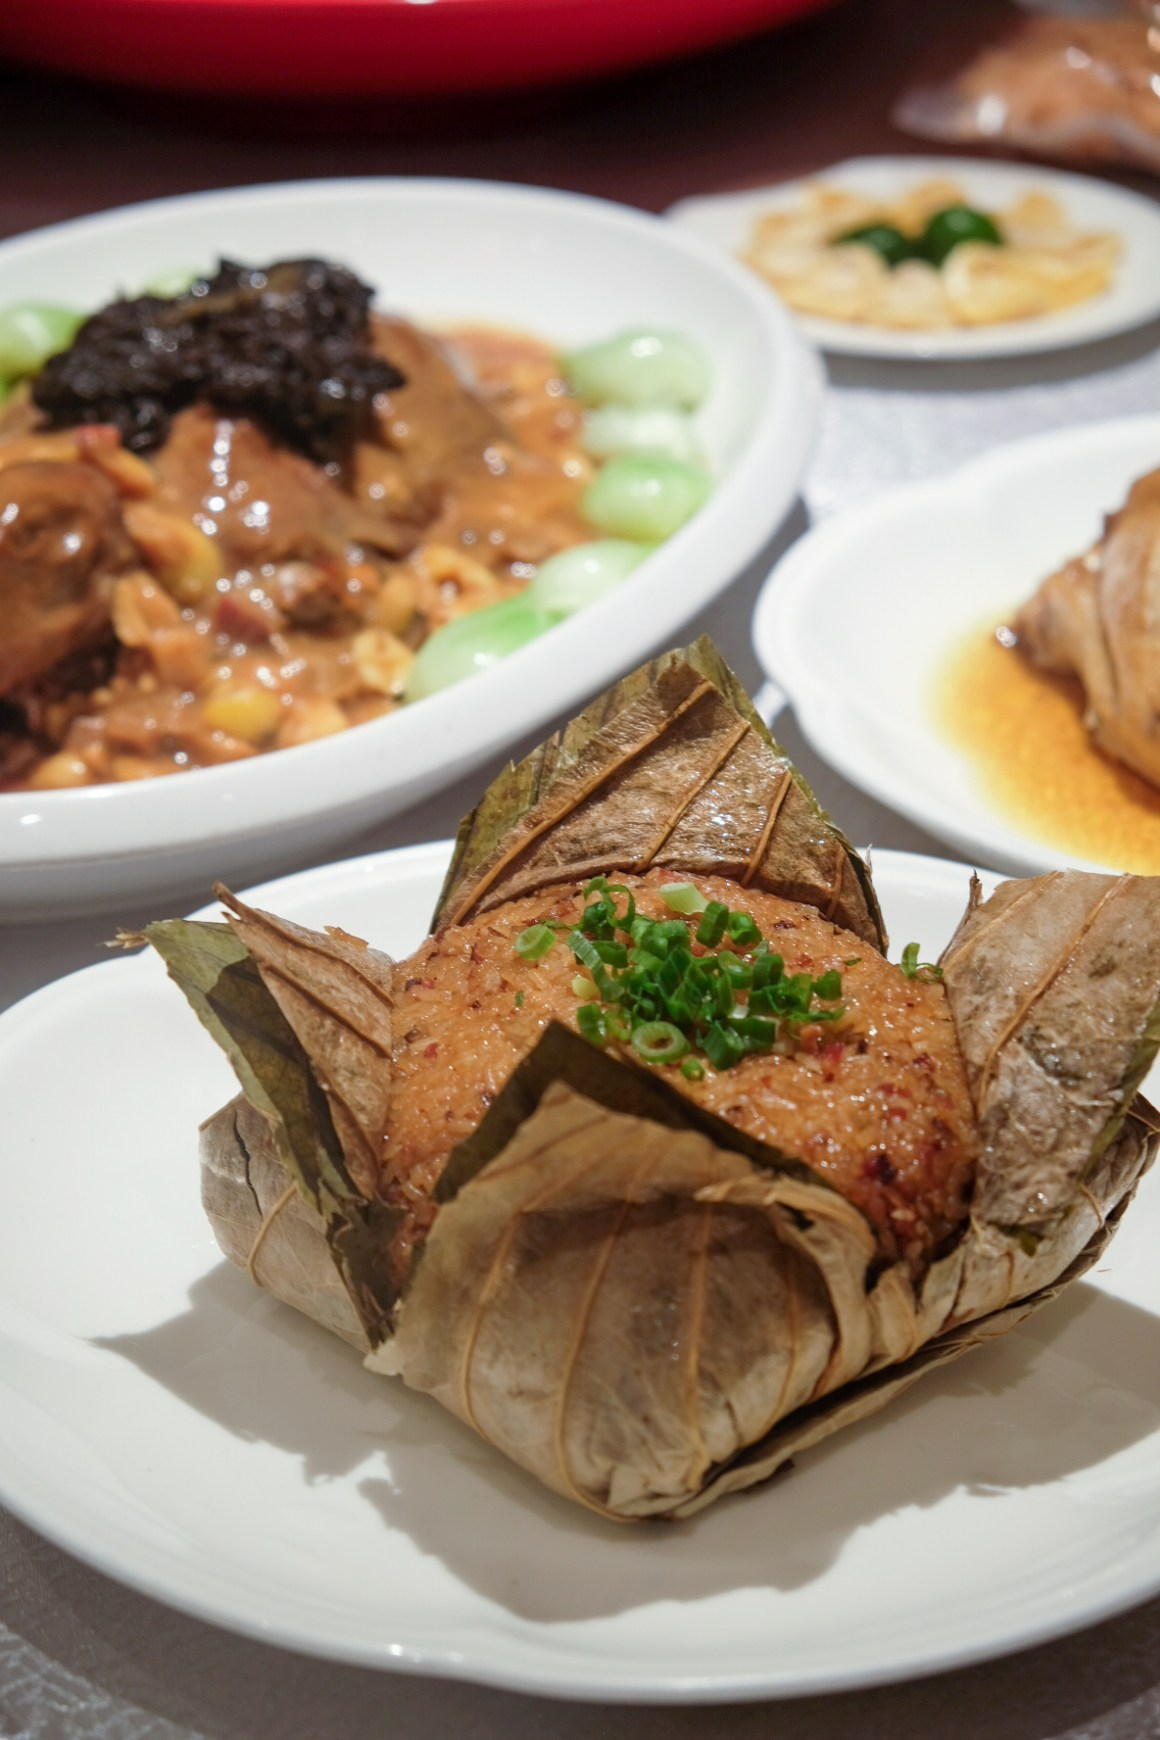 Usher 2020 Lunar New Year With Delectable Dining Options - Fortune Lotus Leaf Glutinous Rice